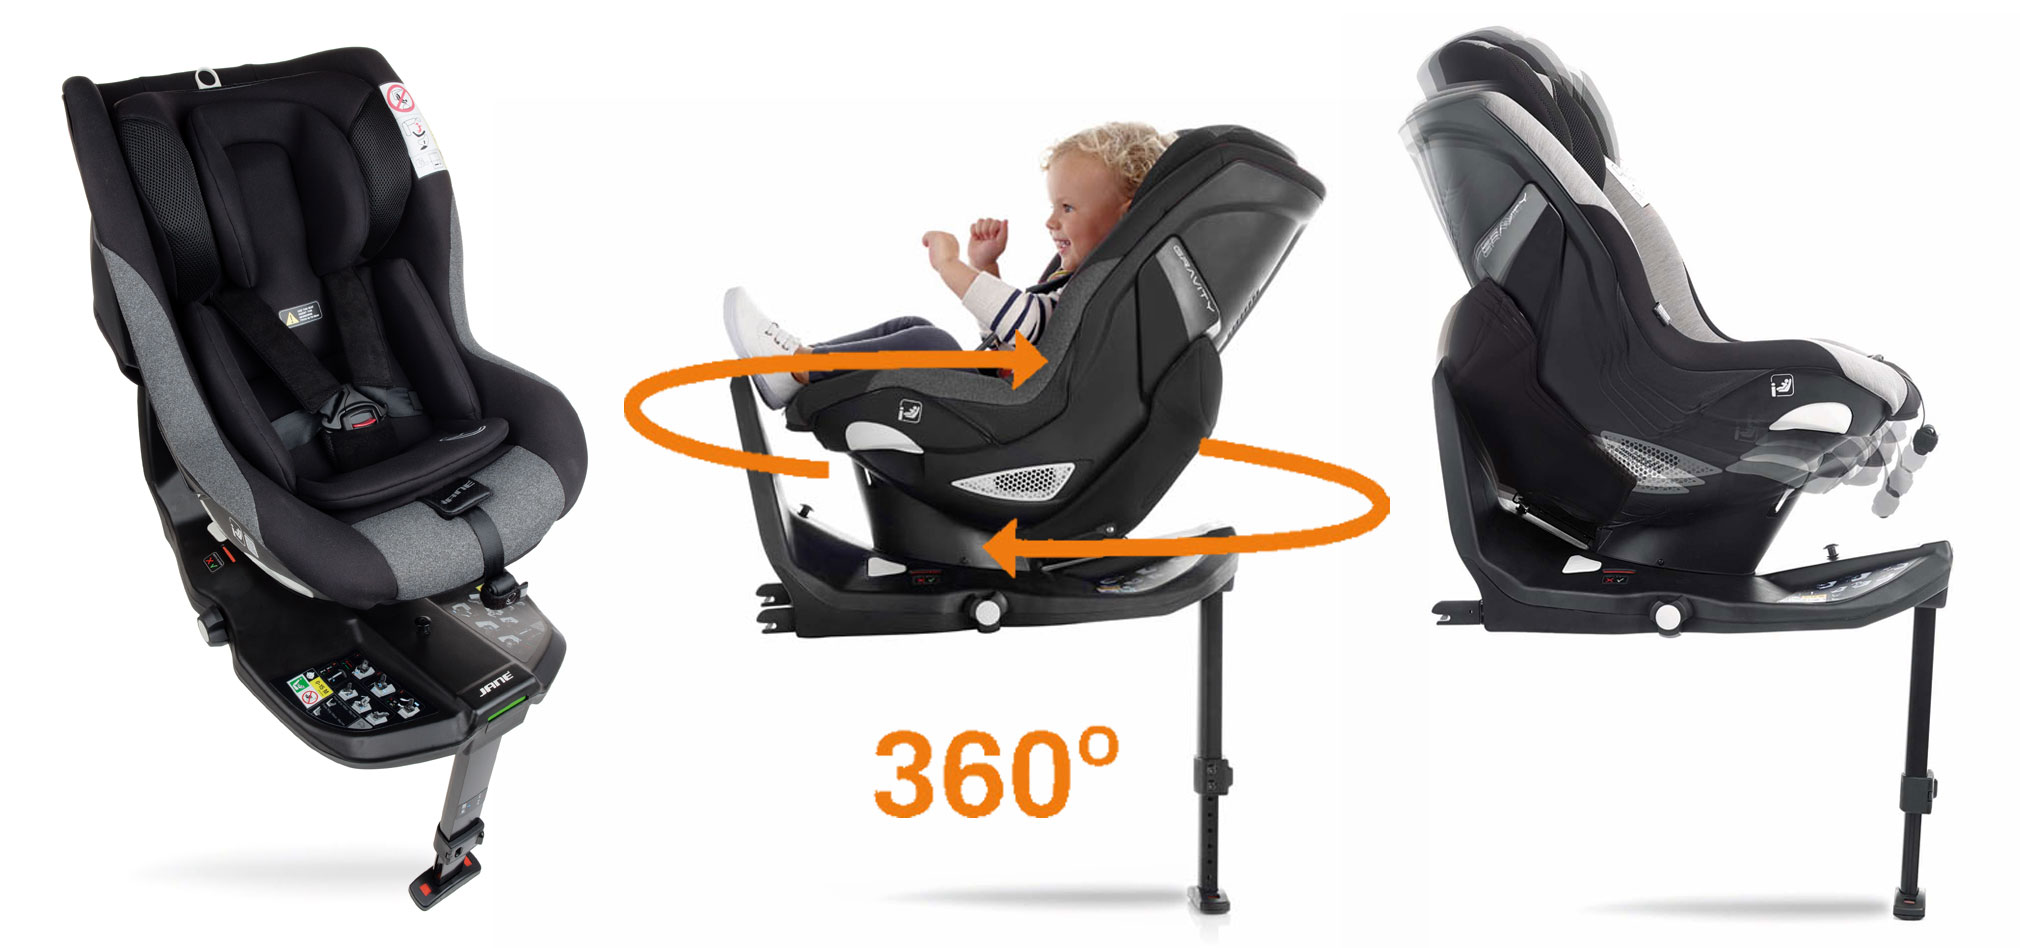 Gravity iSize 360 car seat